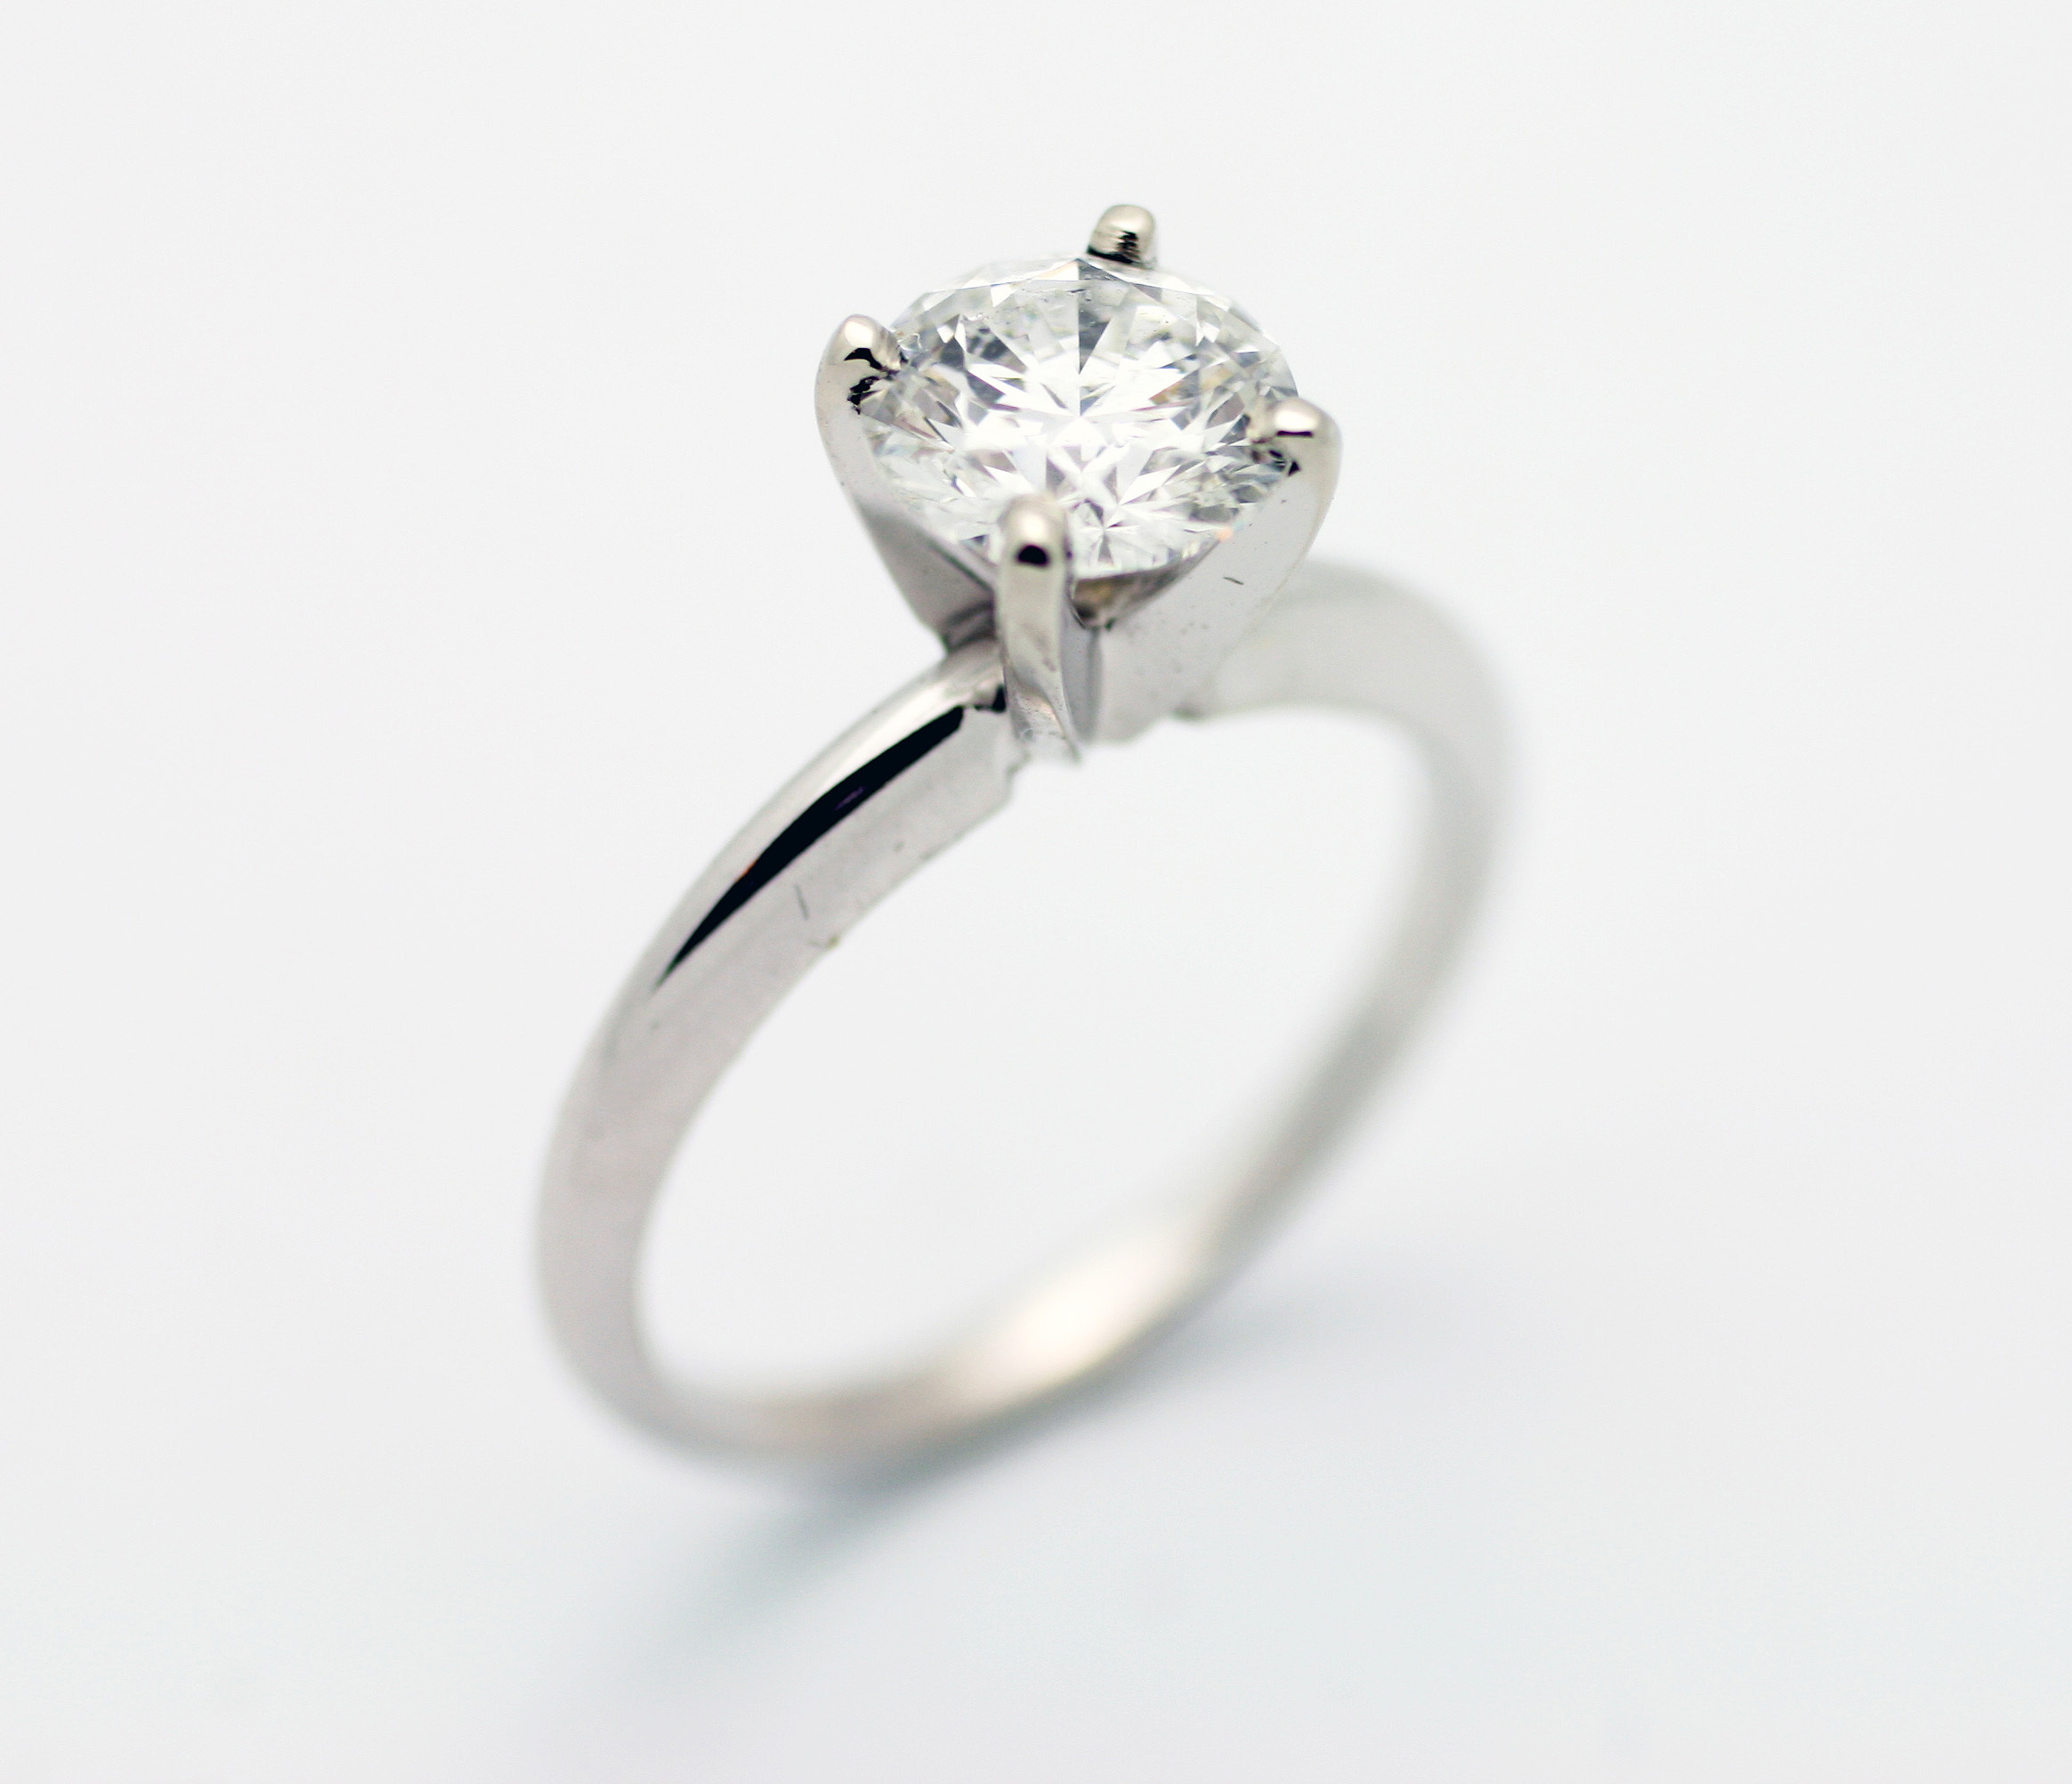 1.15ct round brilliant cut diamond centerstone, classic 4 claw rounded shank, 14kt white gold solitaire ring.  Starting at $5100 for this stone size aSI-2 clarity I colour  Can be customizable with any stone, size, metal etc.